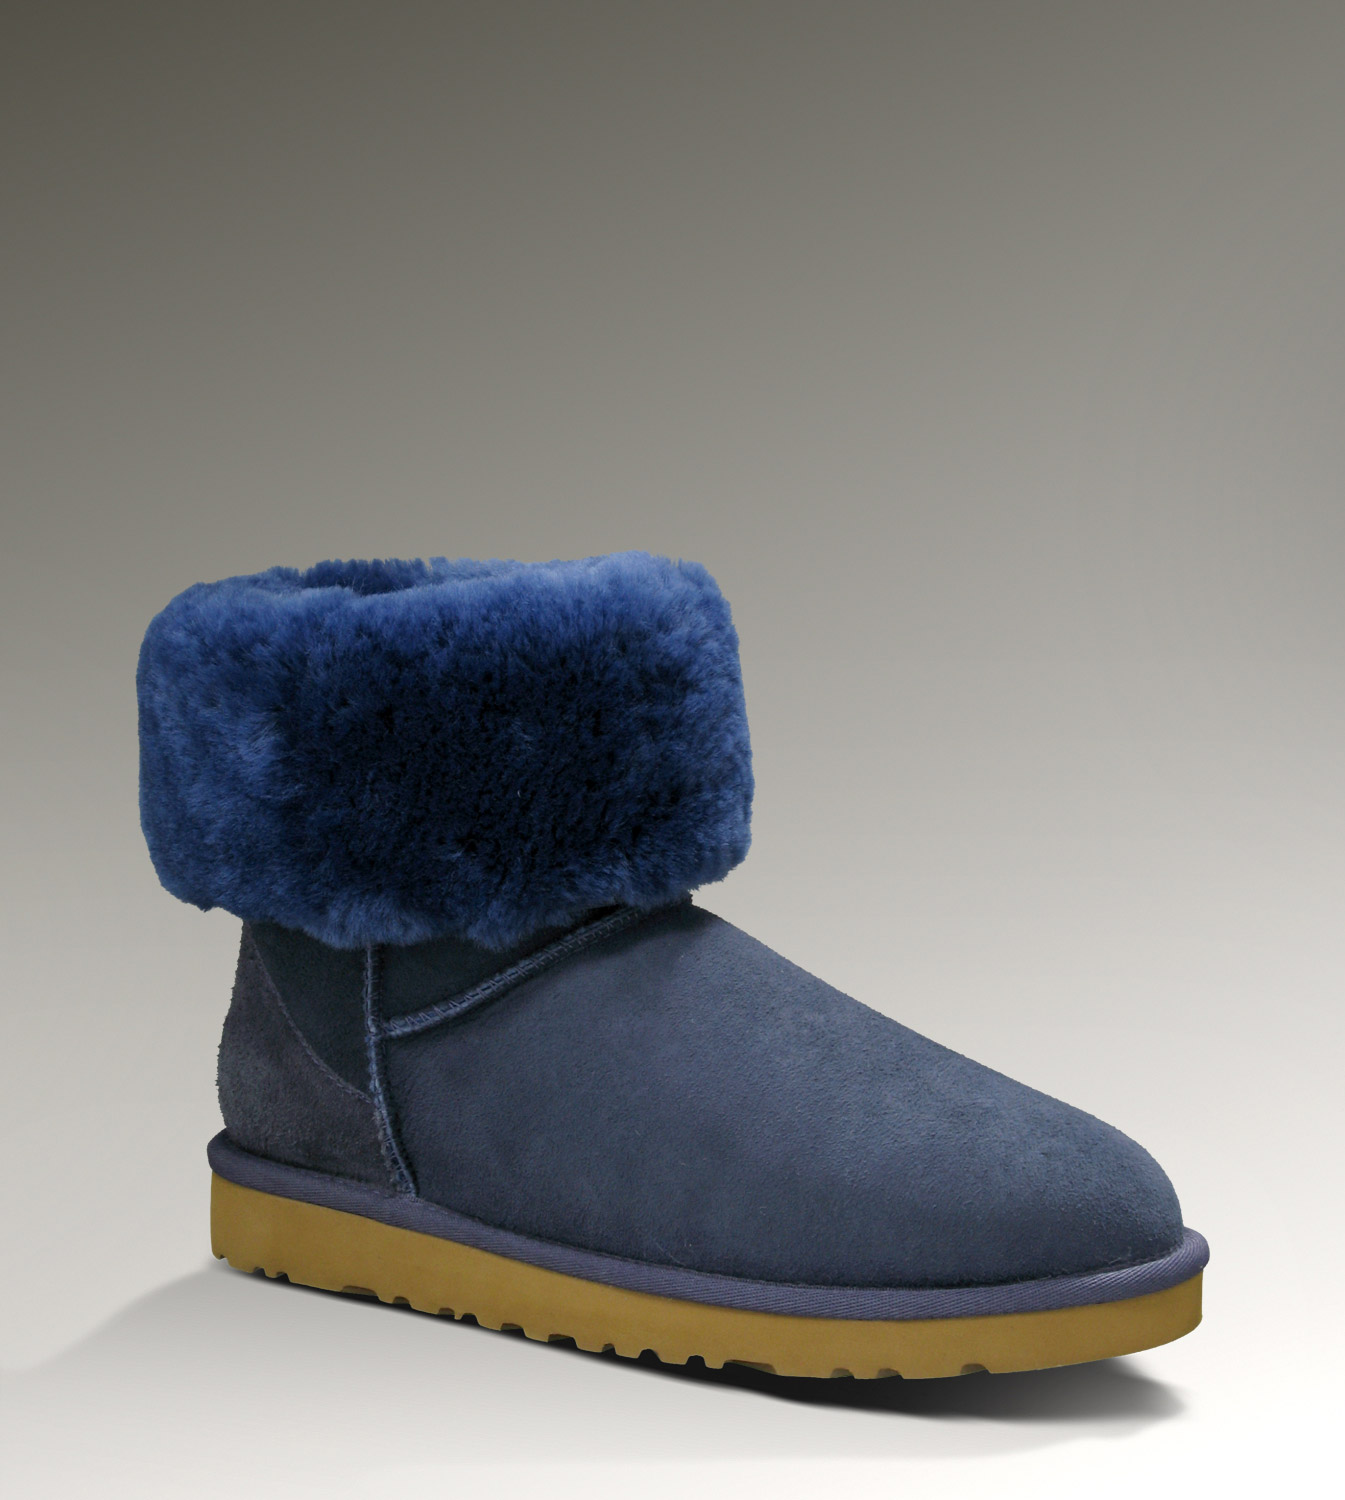 UGG Classic Short 5825 Navy Boots